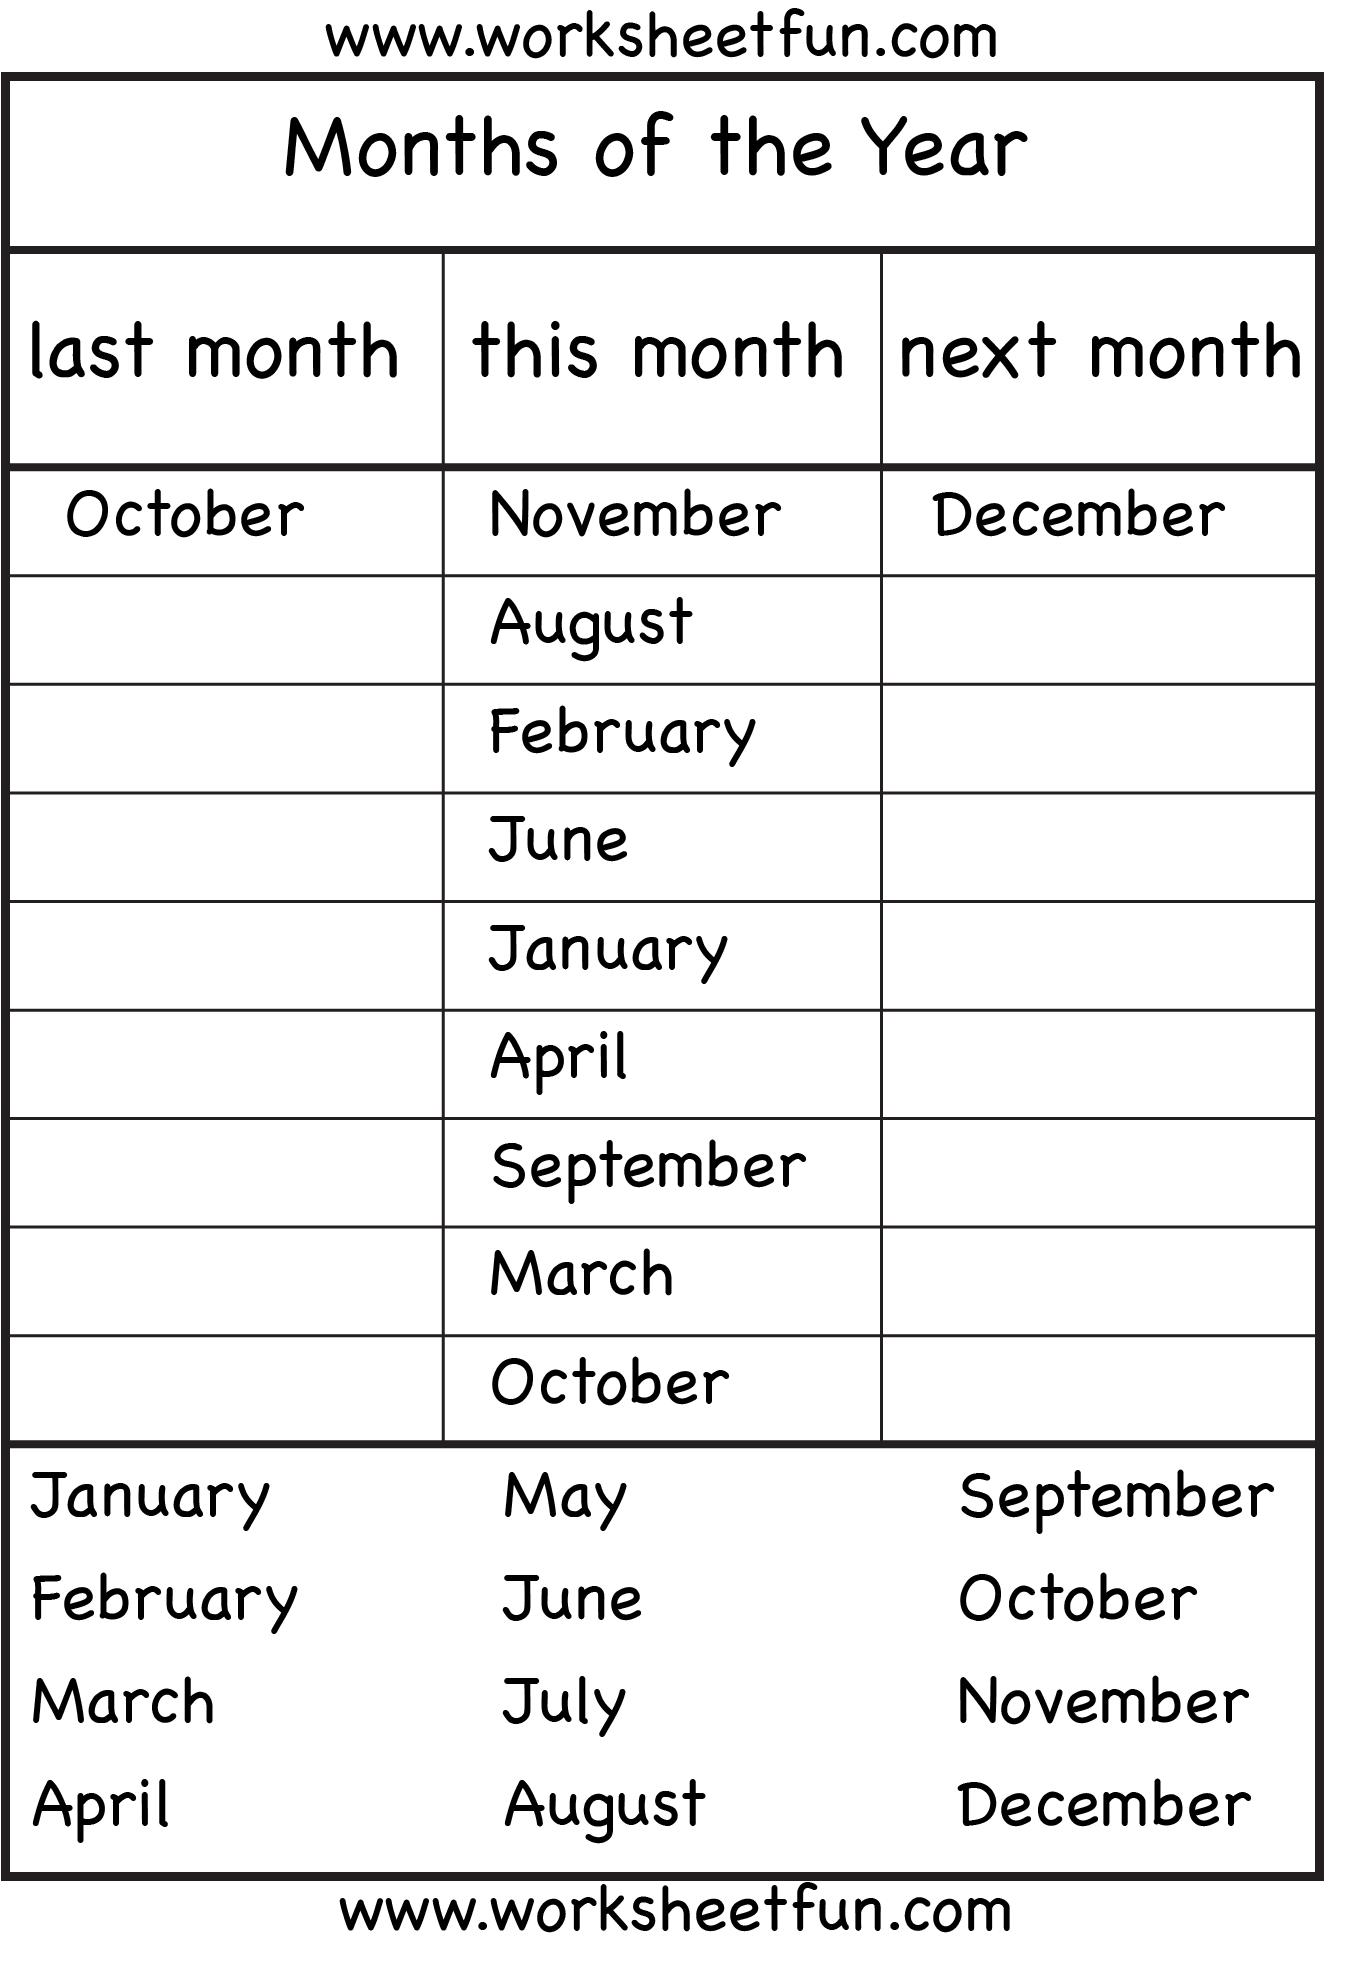 Los Meses En Ingles Months Of The Year 1ª Eval English Class Ingles